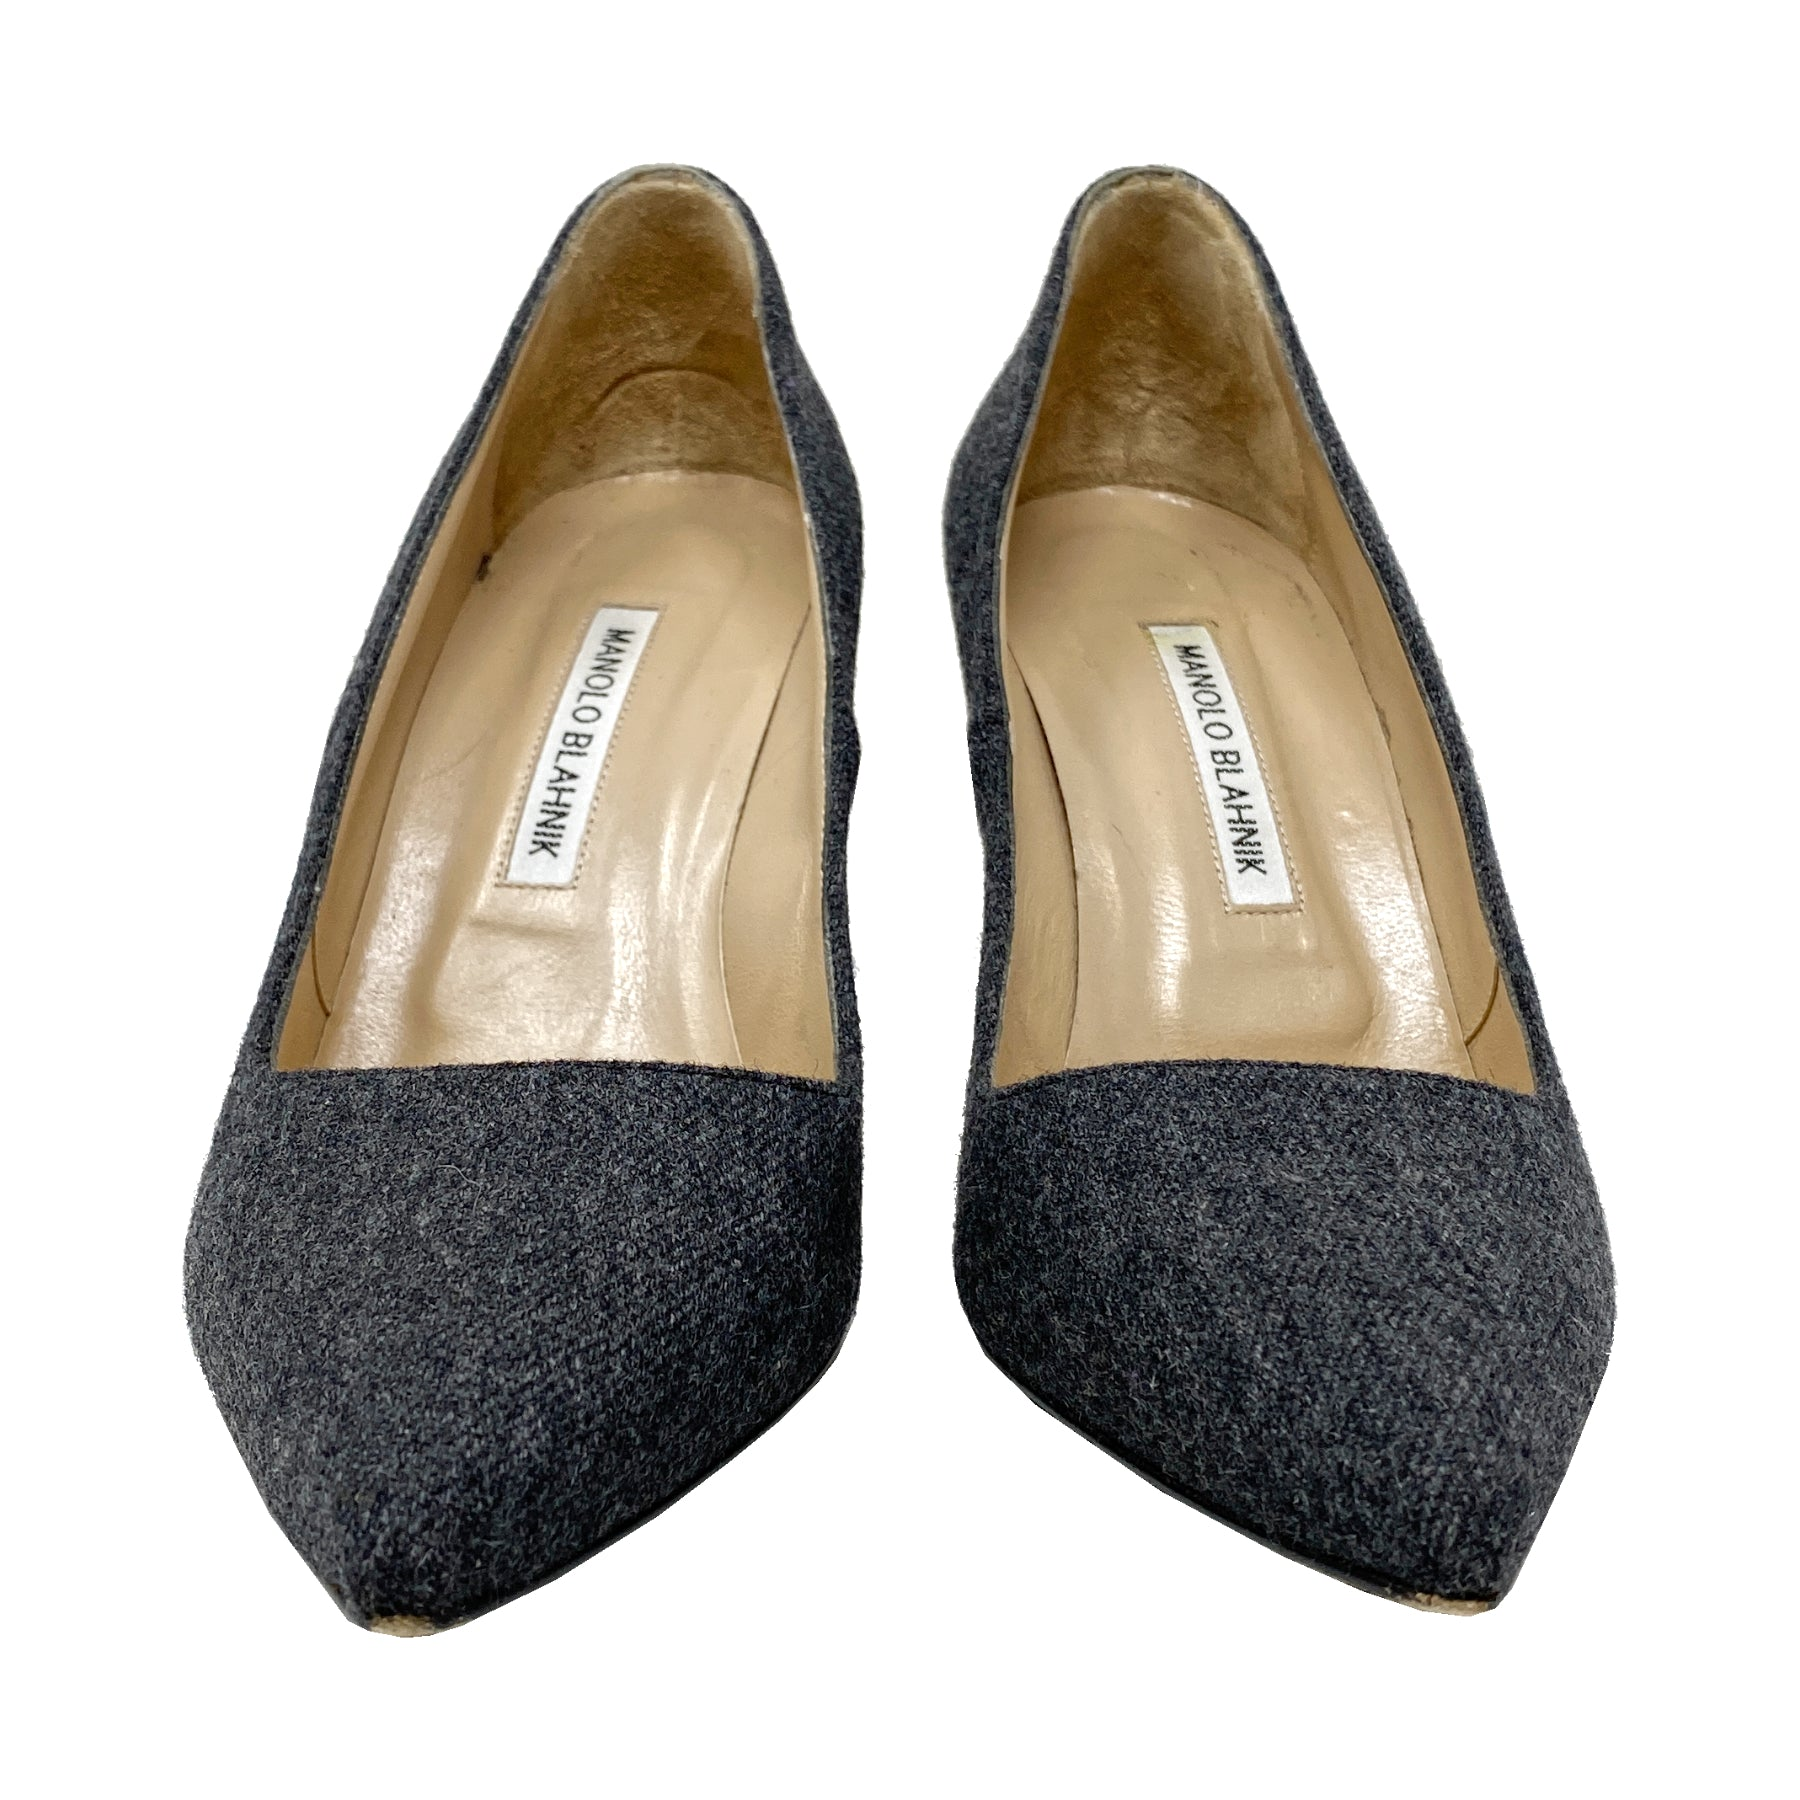 Manolo Blahnik BB 90 Wool Pointed Pumps Size EU 39.5